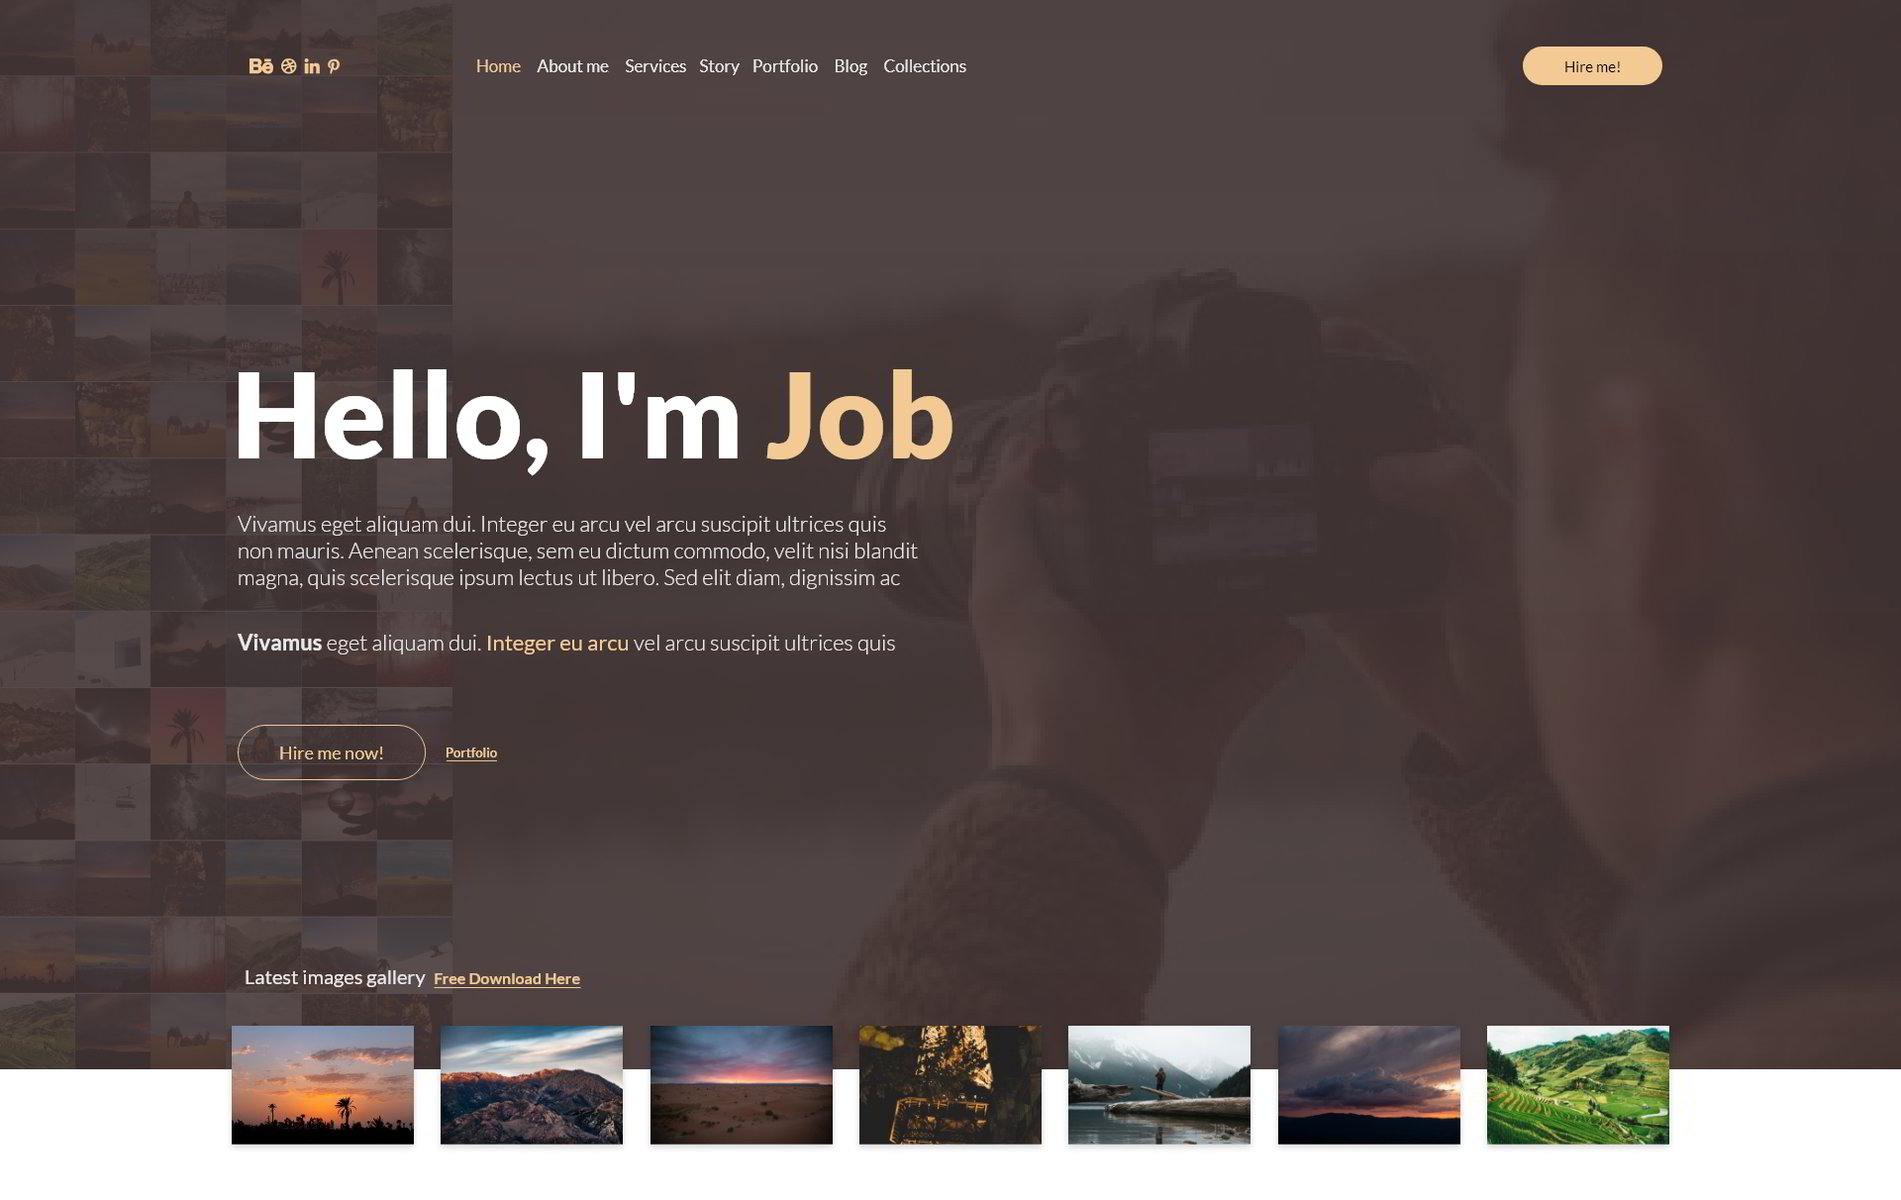 Job photo service - Adobe xd free landing page - ebuildix